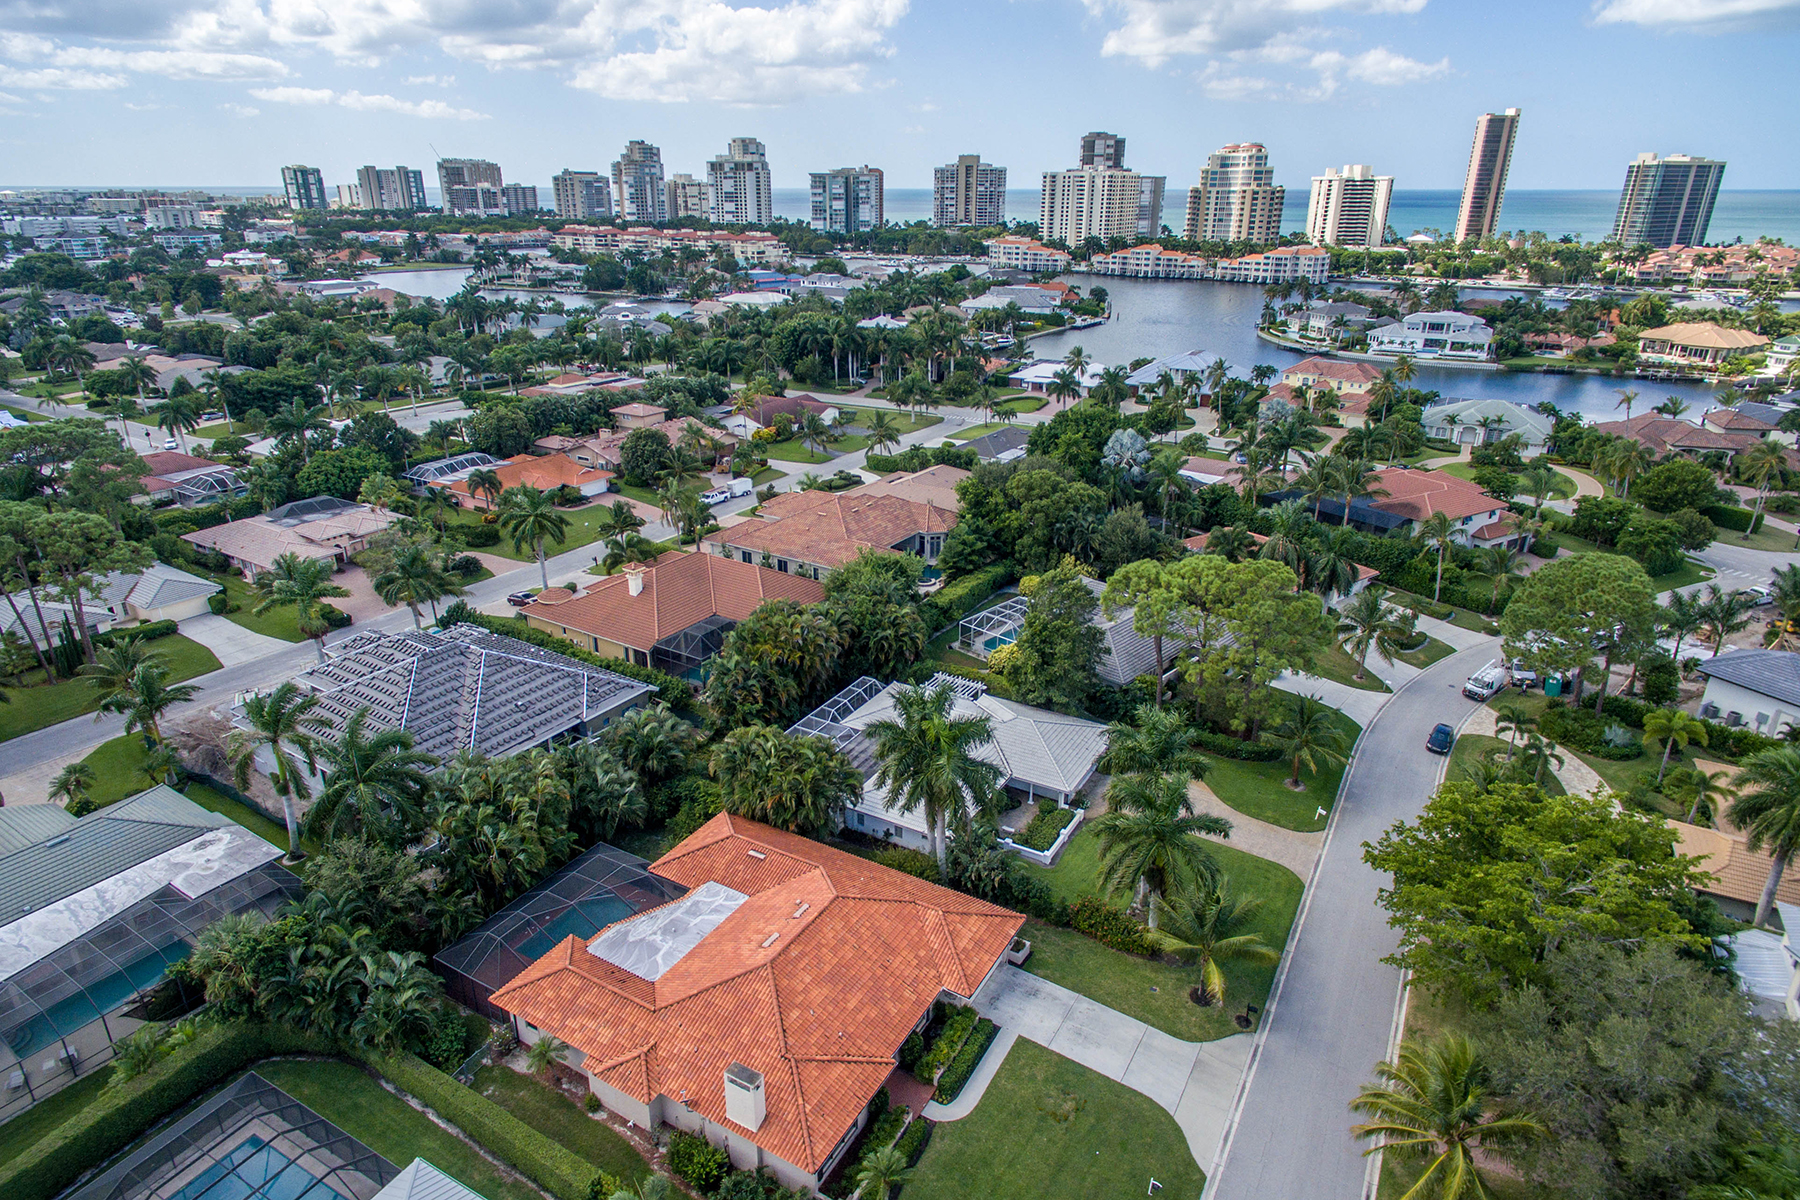 Single Family Home for Sale at Naples 468 Devils Ln Naples, Florida, 34103 United States